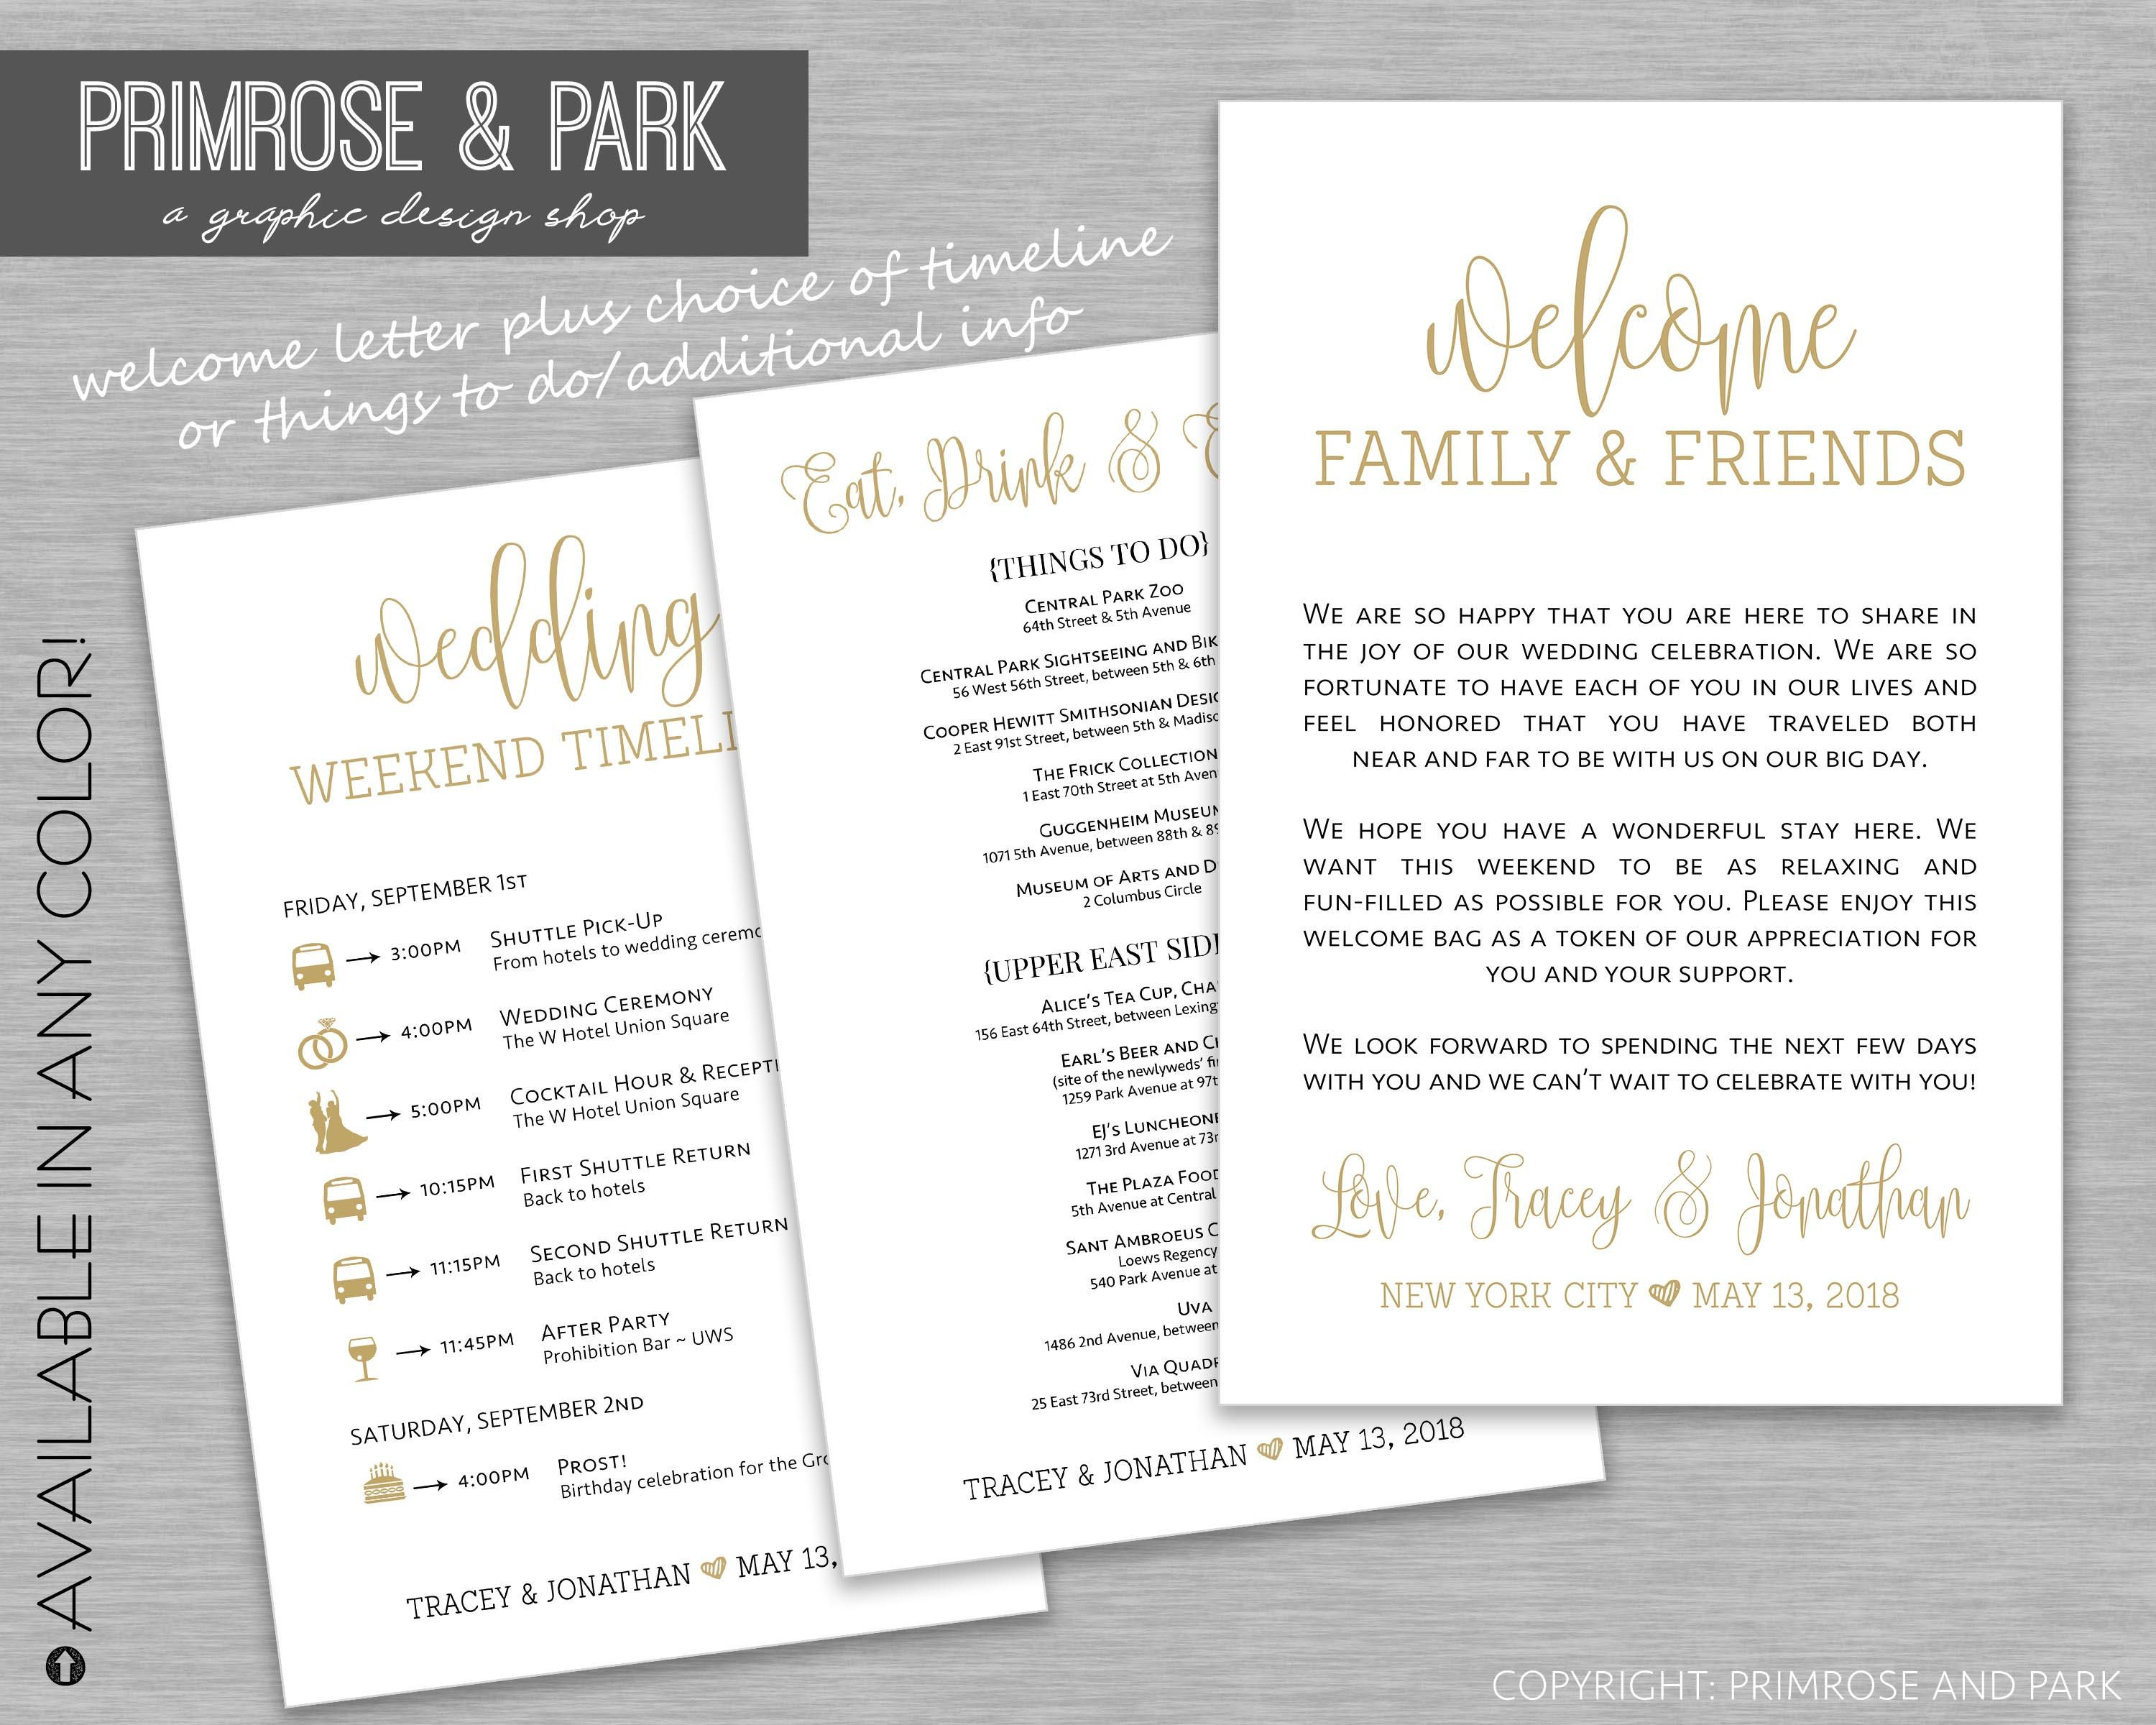 These personalized cards are a perfect way to keep your